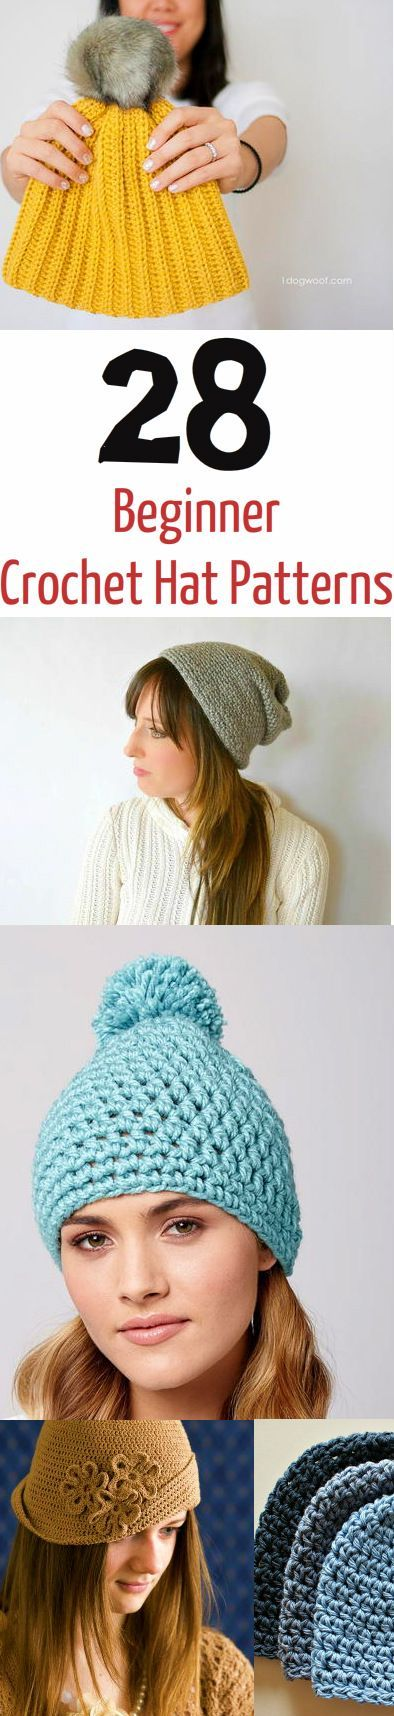 28 Beginner Crochet Hat Patterns - Free Crochet Patterns - (allfreecrochet)